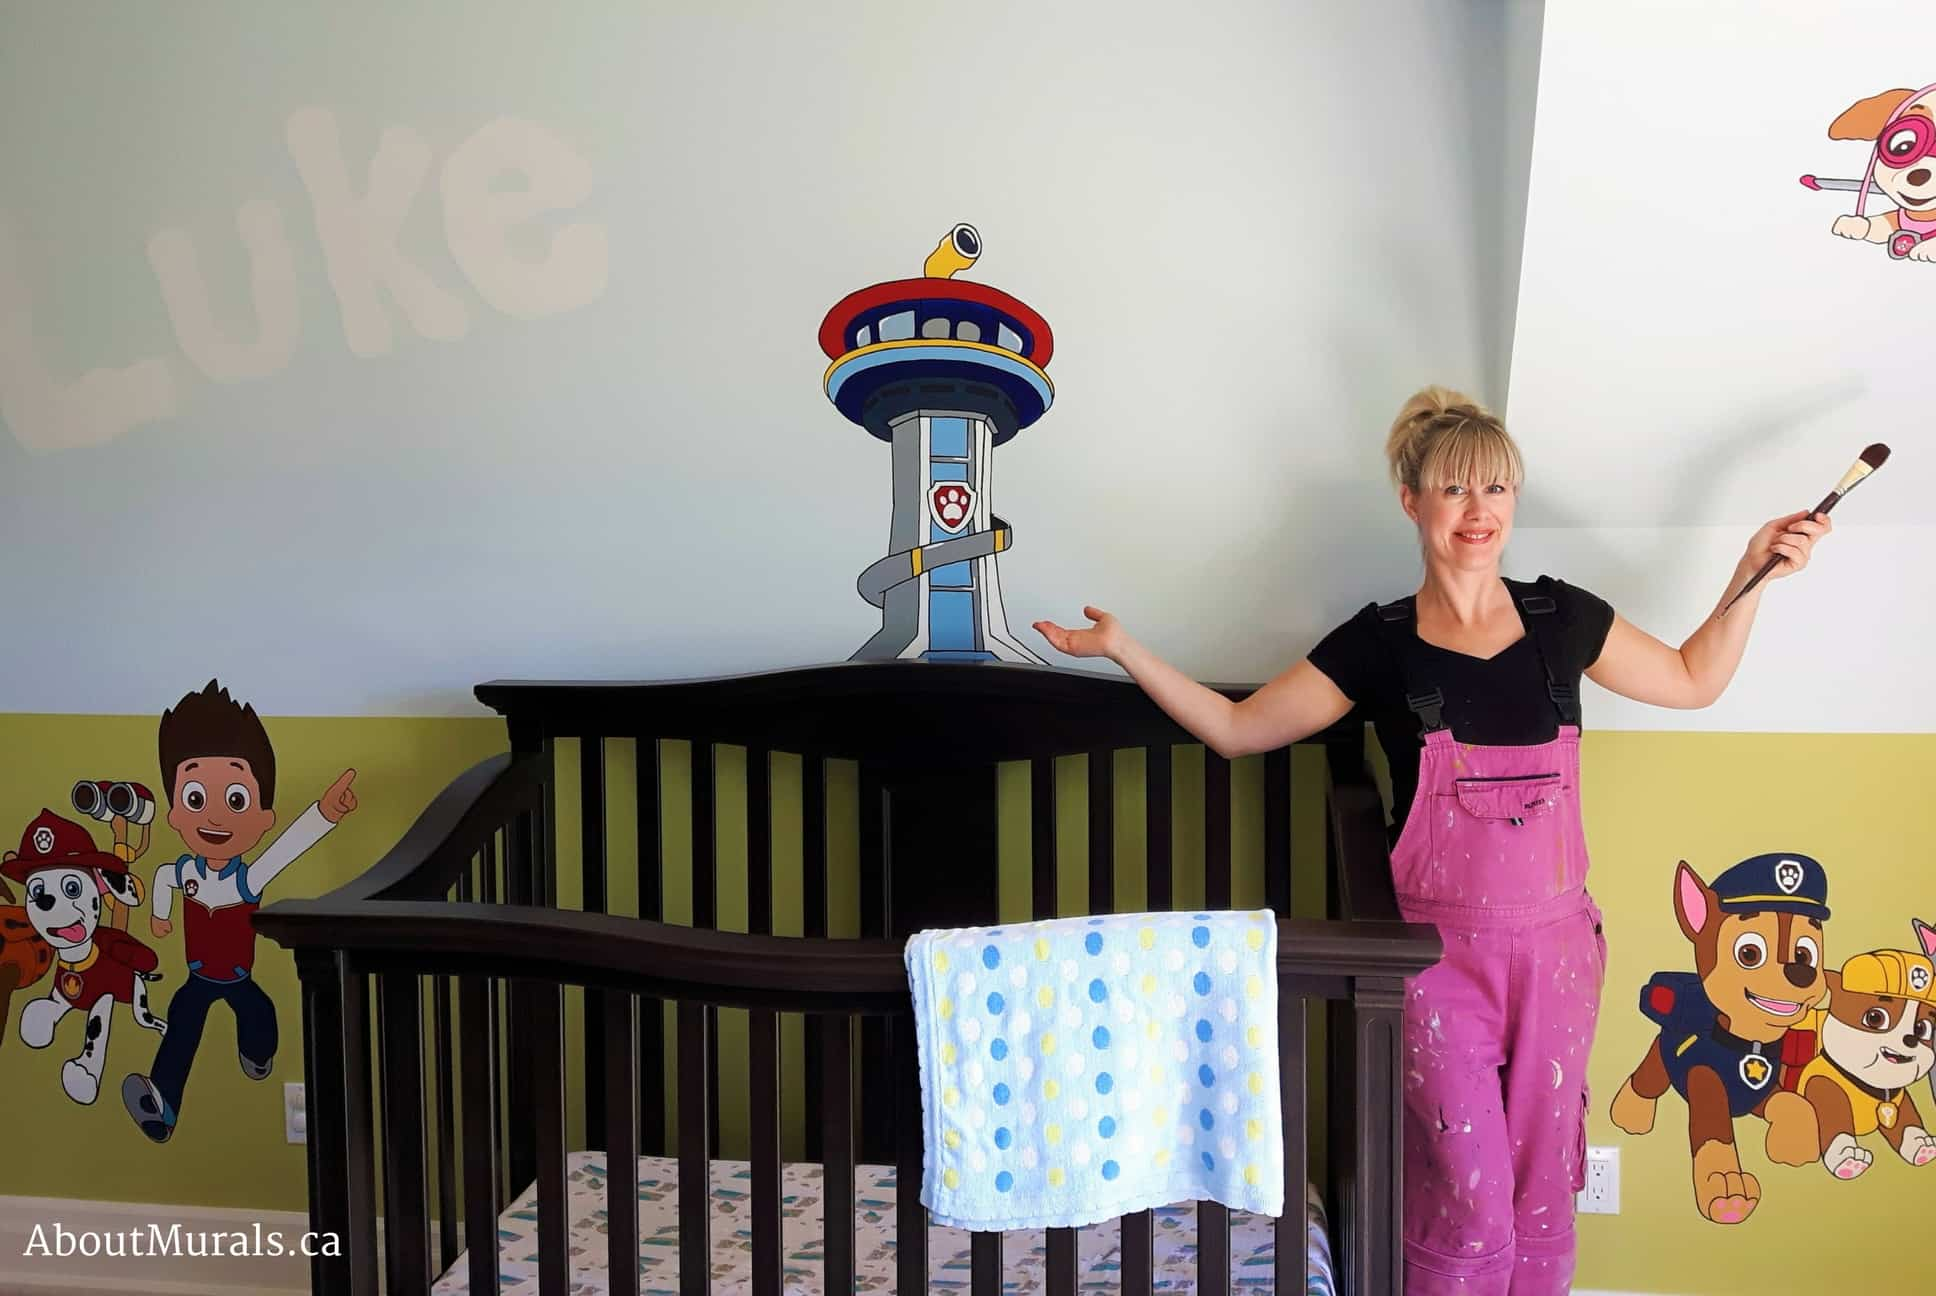 Mural painter Adrienne Scanlan stands next to the Paw Patrol mural she painted